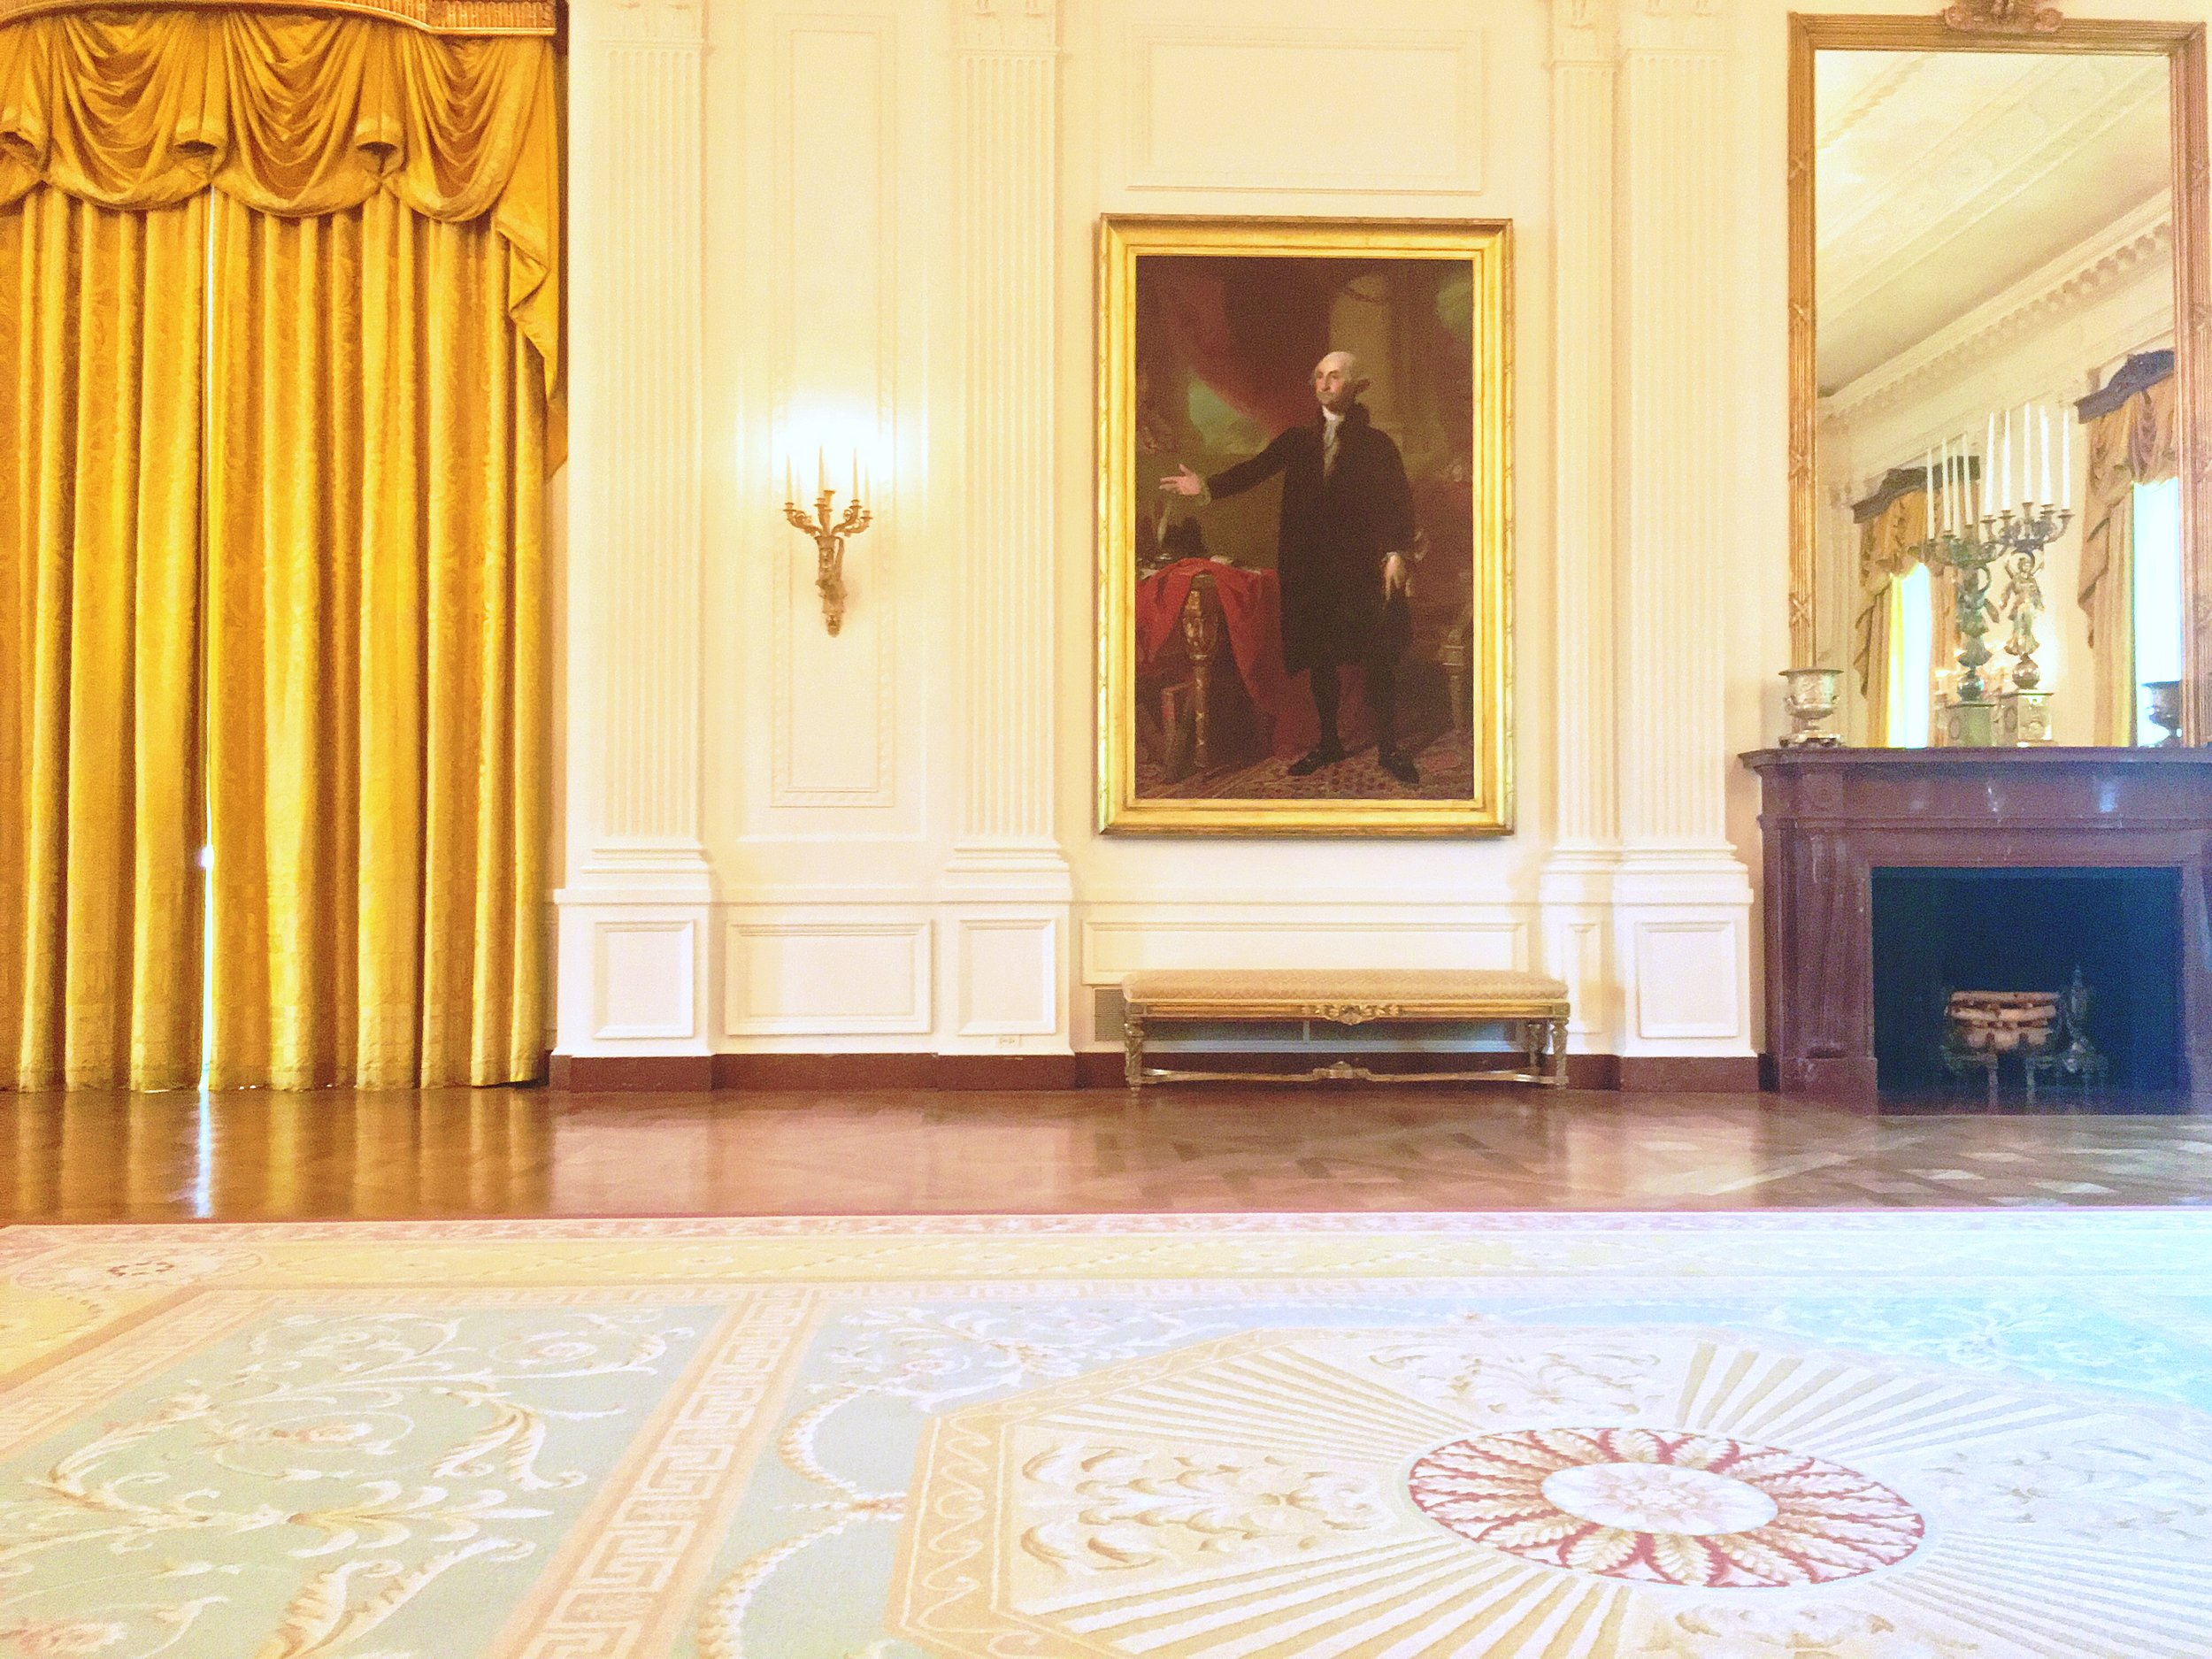 The East Room features a portrait of George Washington that First Lady Dolley Madison saved when the British burned the White House in 1814.